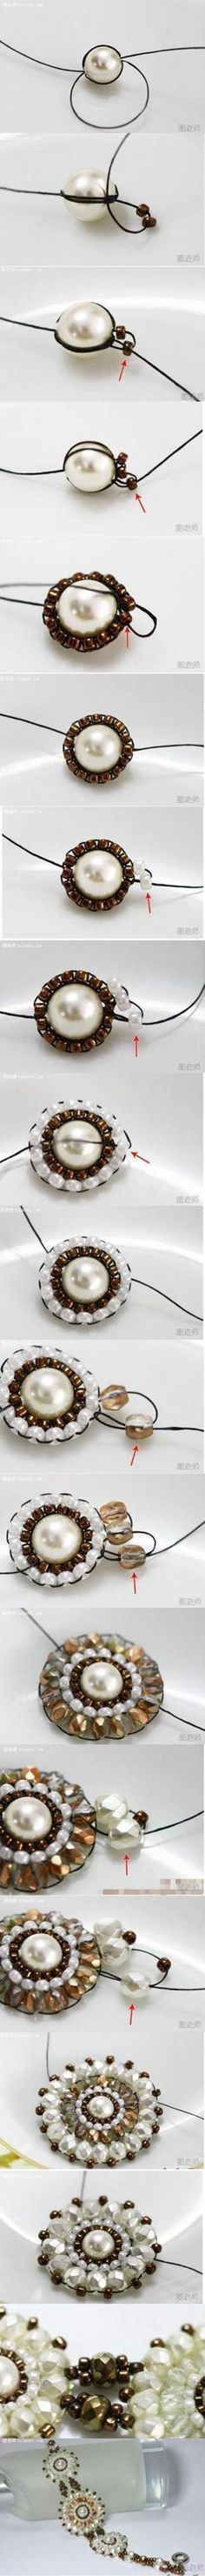 How to Make Your Own Cool Bracelets